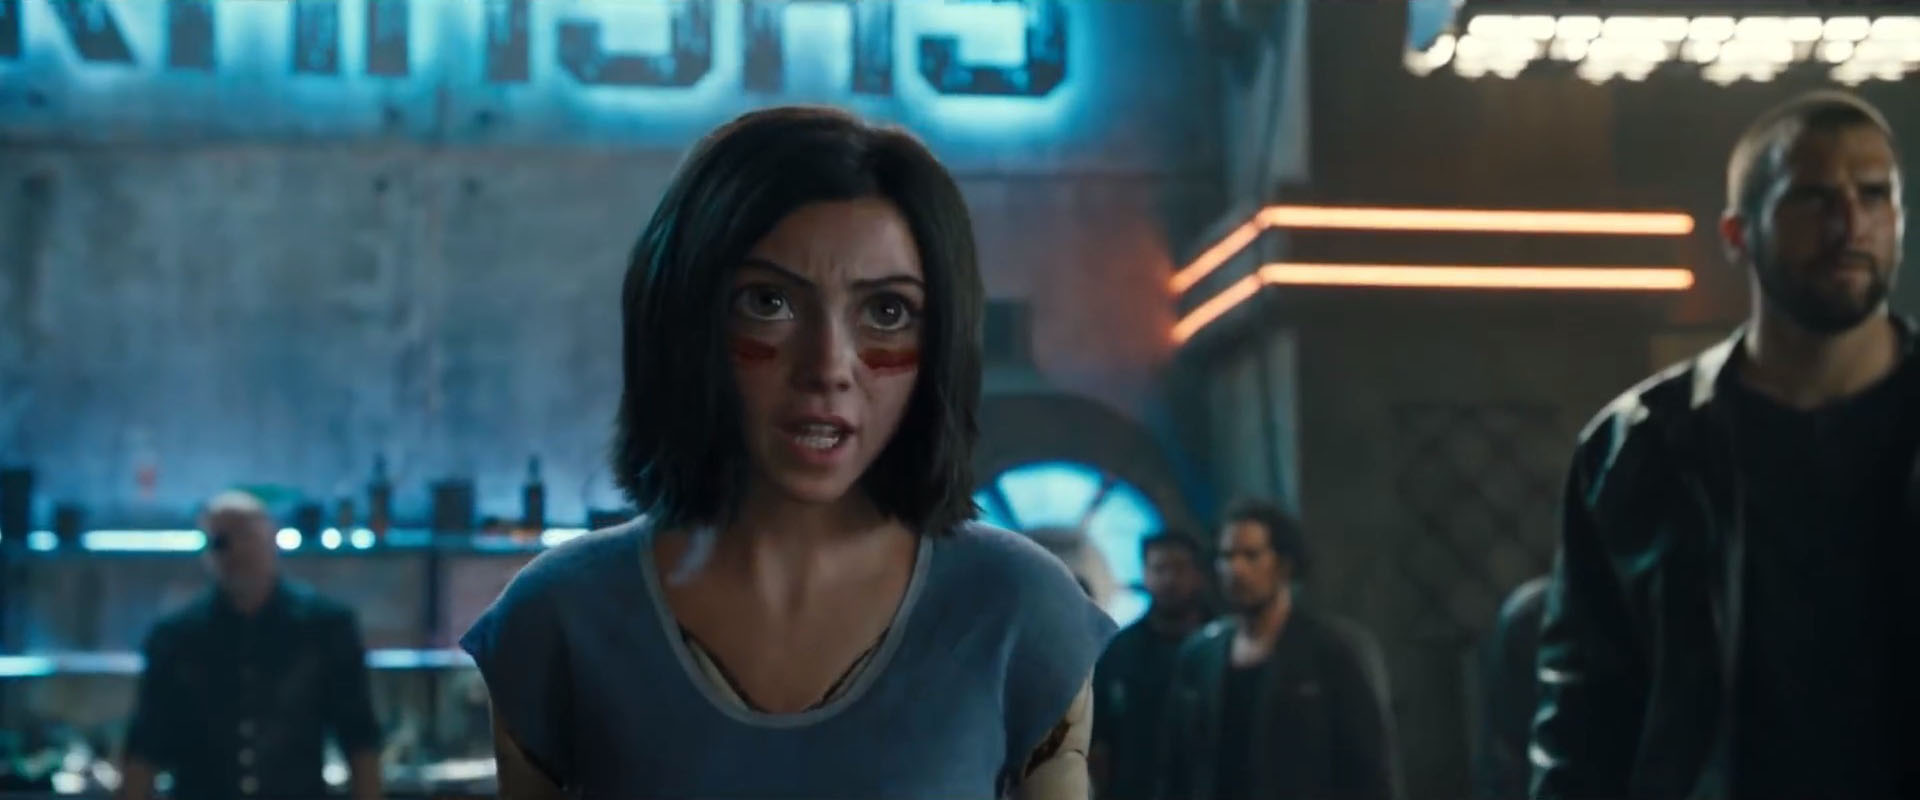 Alita Battle Angel Trailer Finally Gives Us A Look At